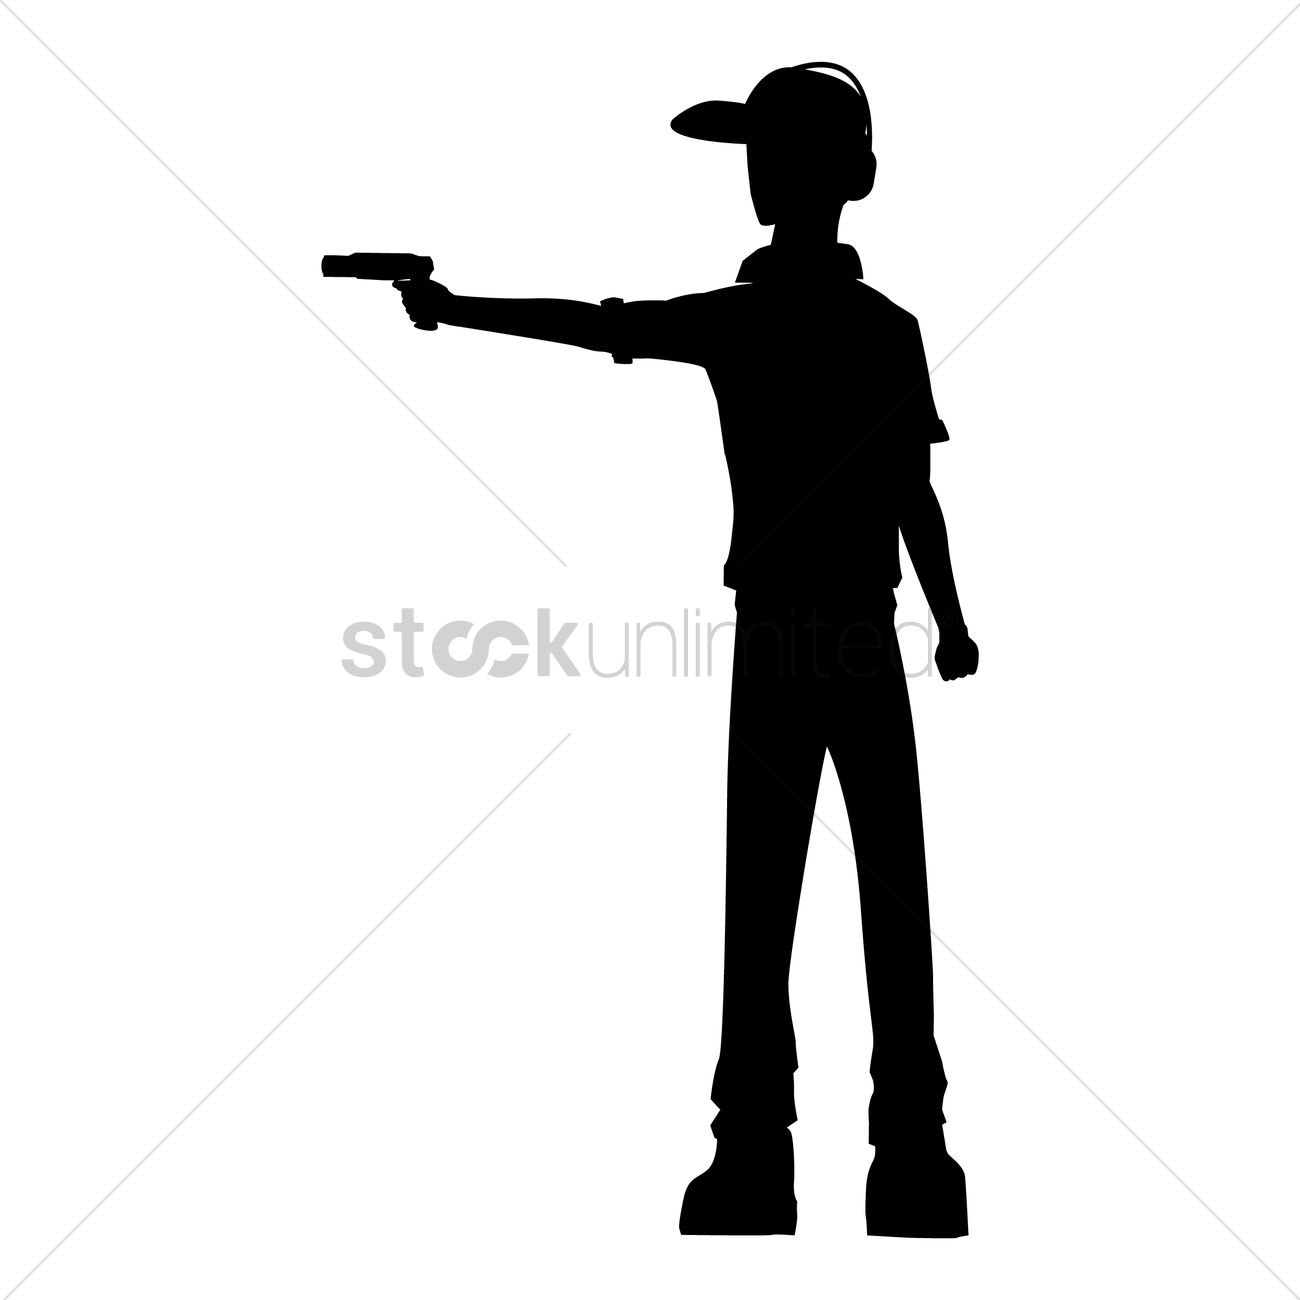 1300x1300 Silhouette Of A Shooter Vector Image